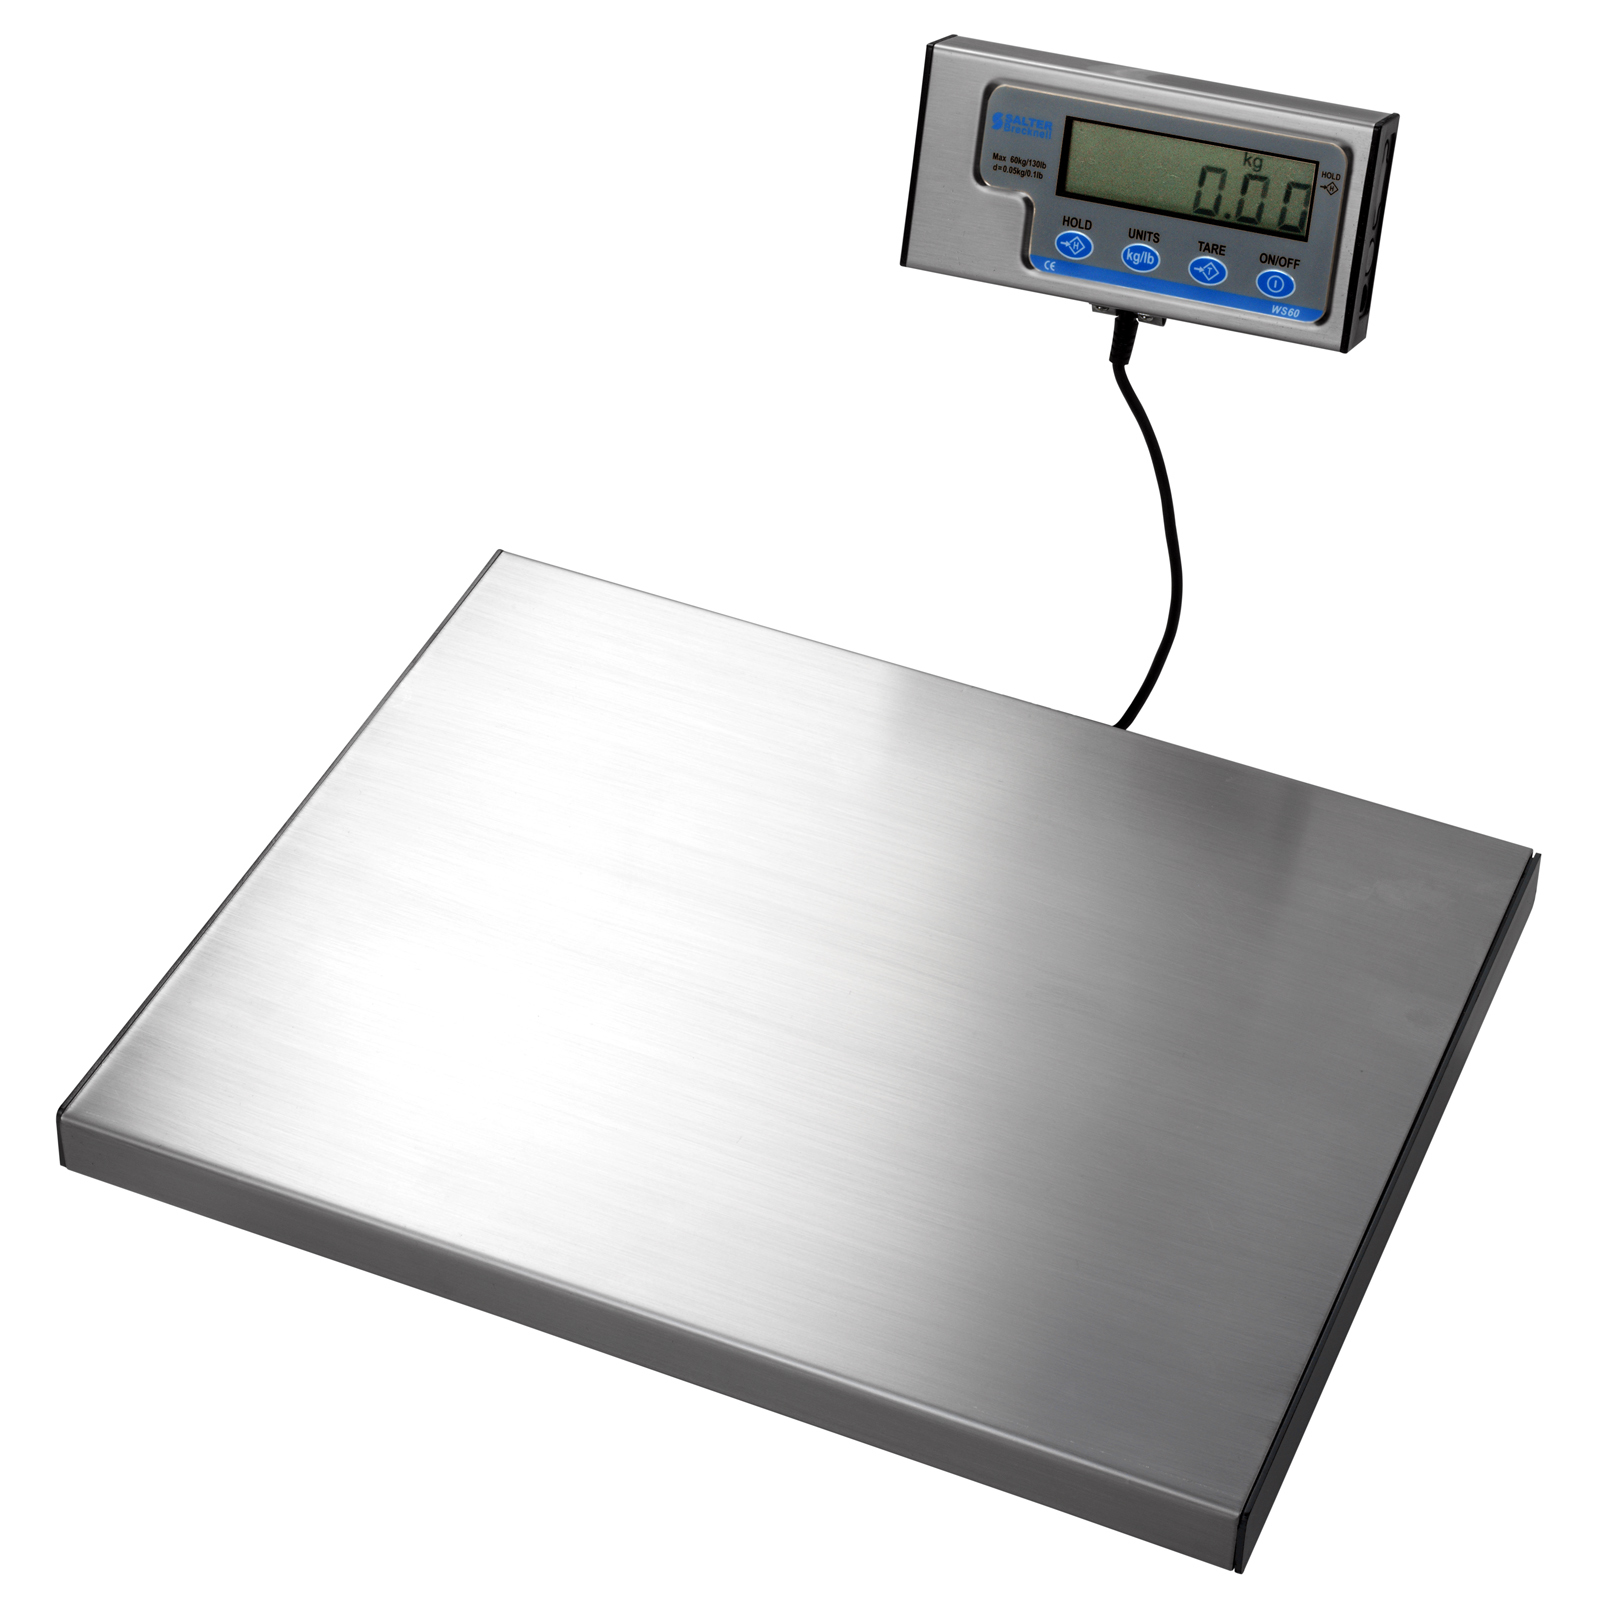 Small Platform Parcel Scale 380x300mm Up to 60Kg Capacity with .02g Increments